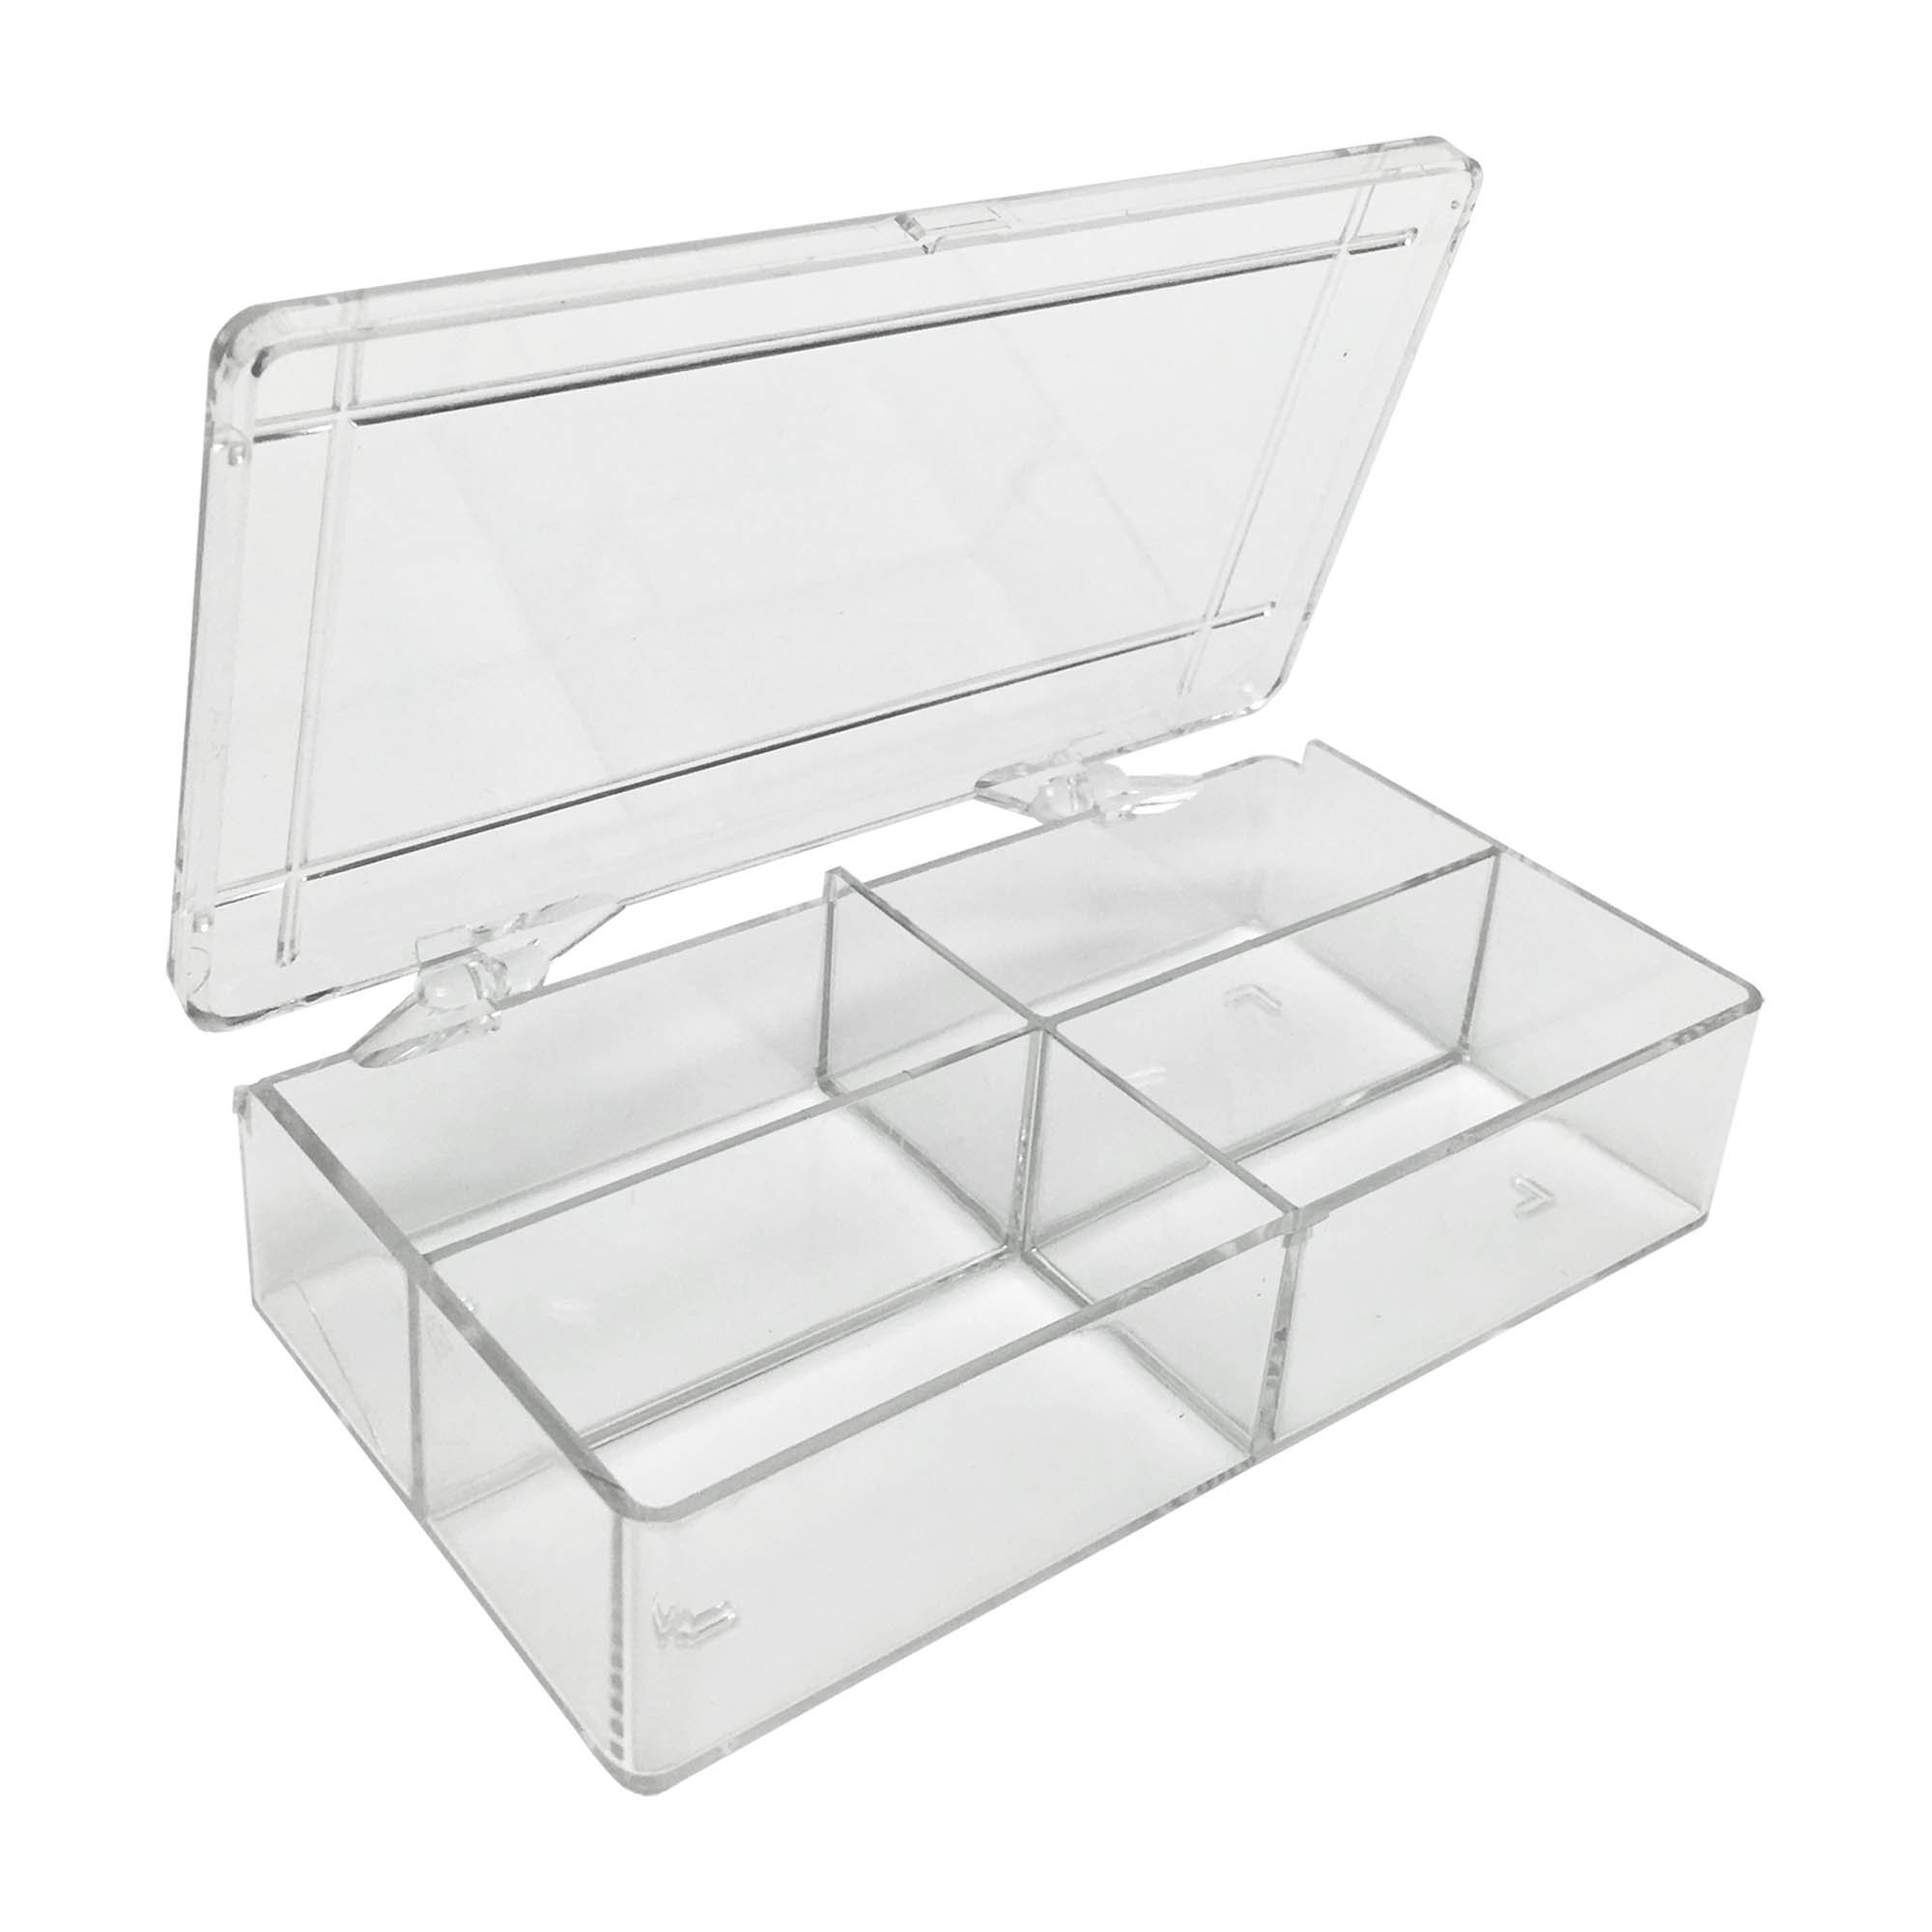 MultiBox Clear Western Blot Box - 4 Compartments 38 x 71 x 28mm Each (Case of 36)